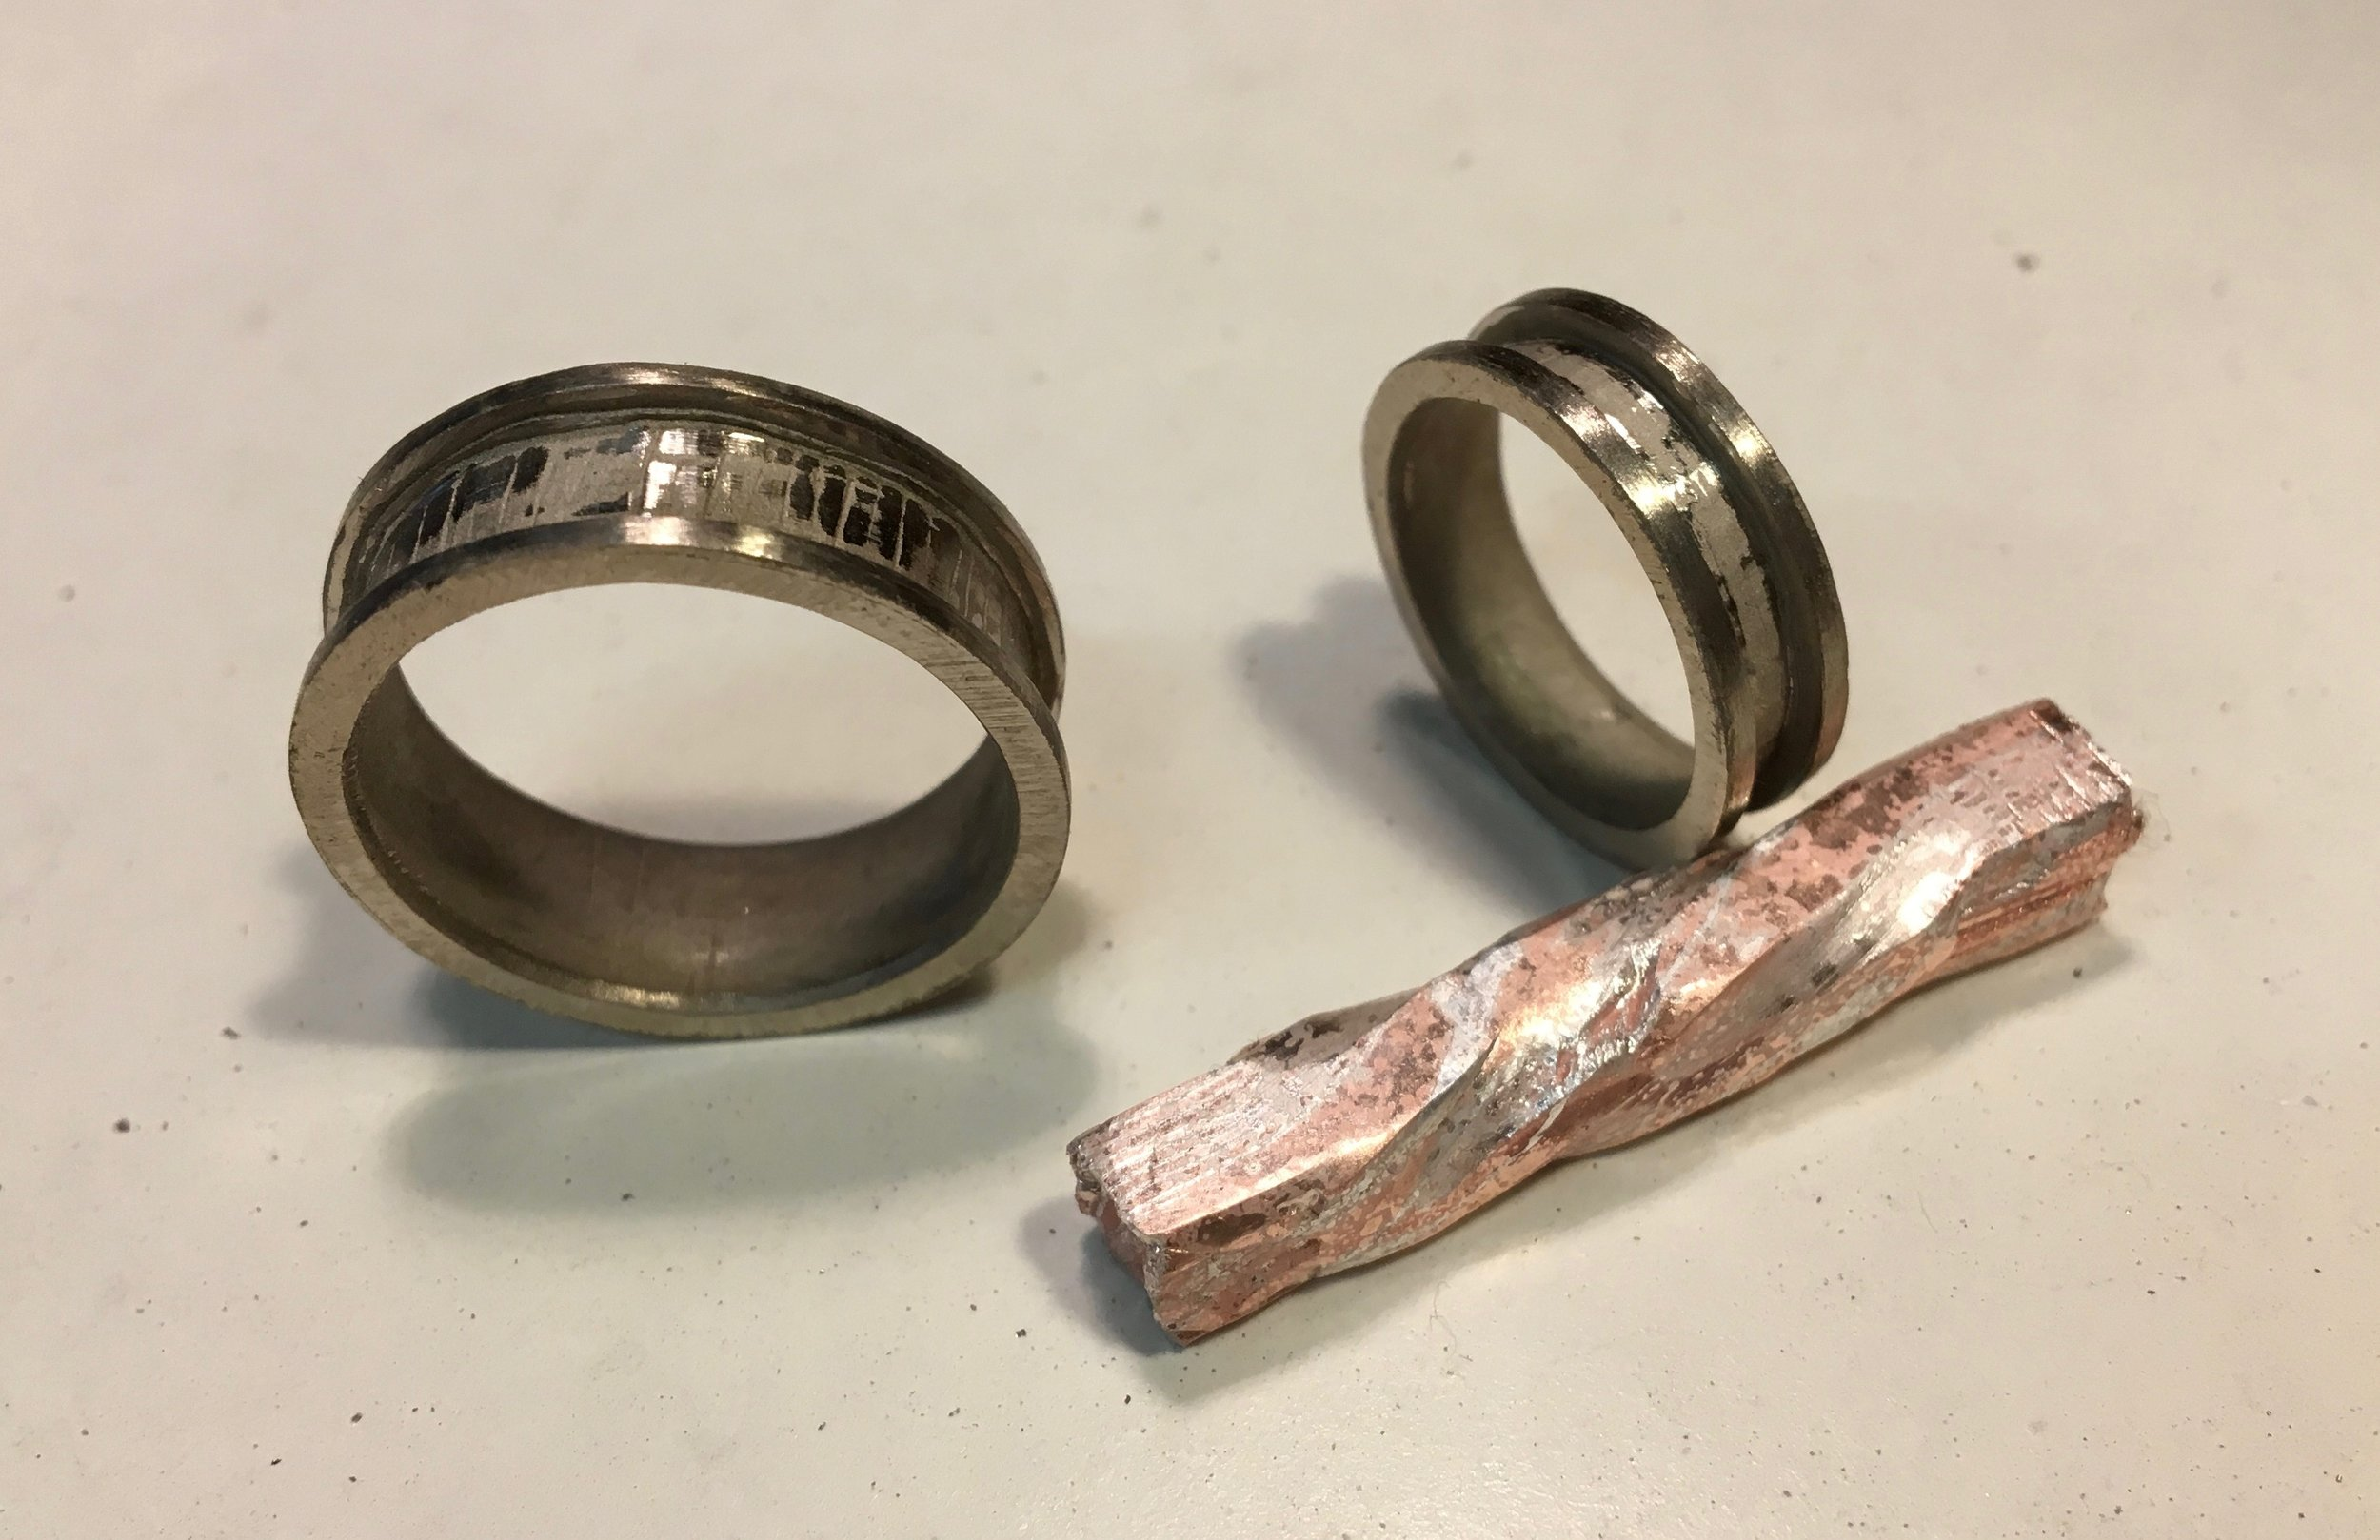 Here you can see the pattern starting to develop in the Mokume billet. The 14k white gold rings have been filed and are awaiting the mokume inlay...